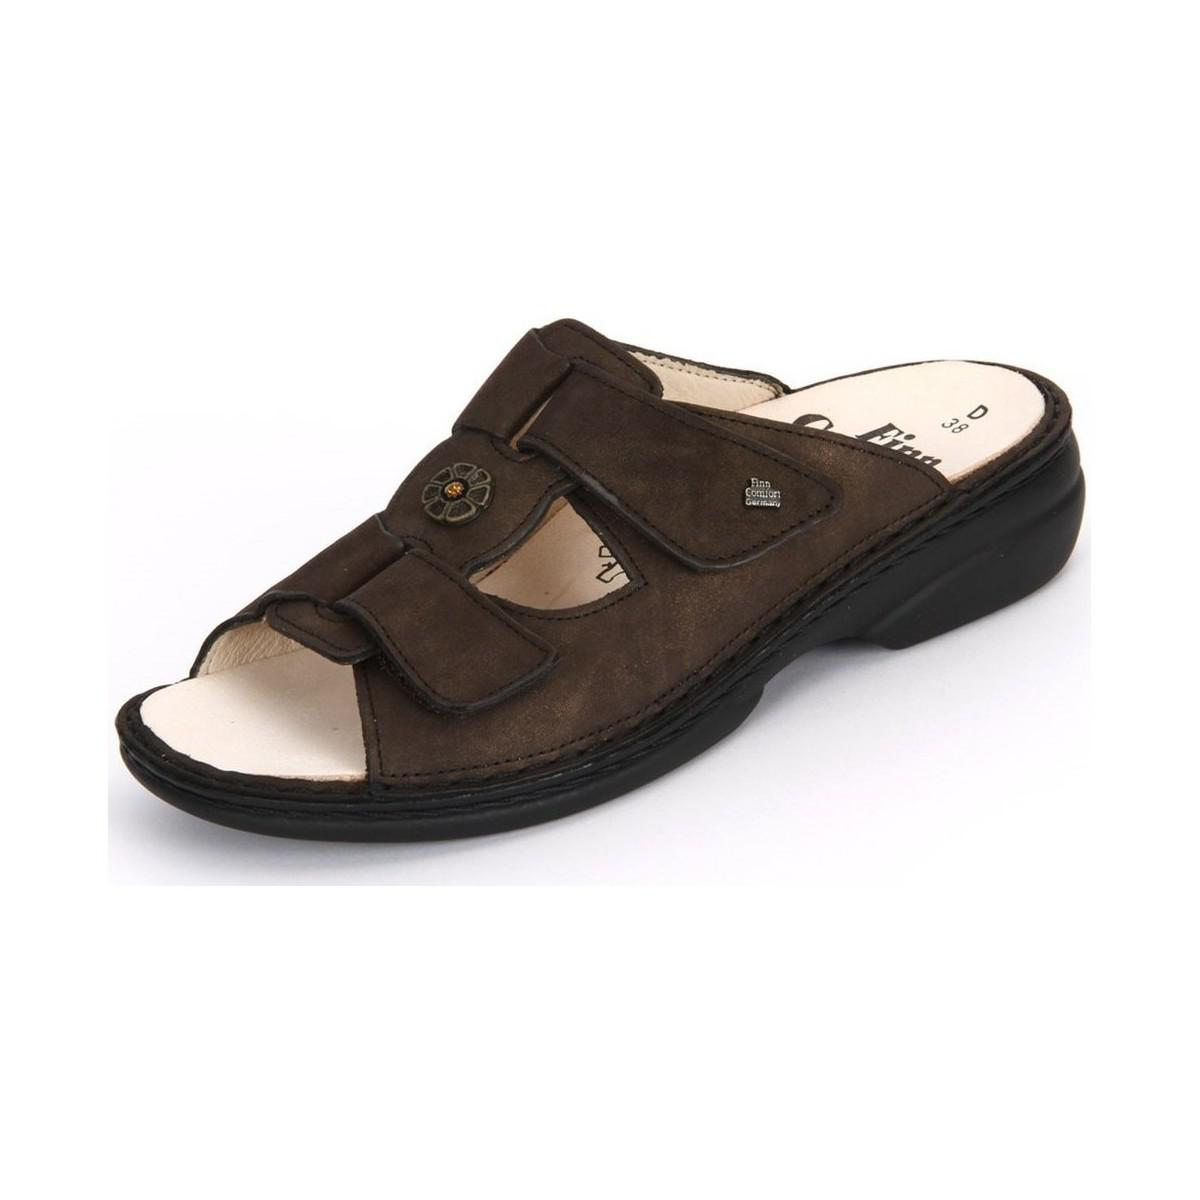 Finn Pattaya Kaffeeoro Frost women's Mules / Casual Shoes in Free Shipping Best Store To Get Outlet Cheapest Price Cheap Price Cost Buy Cheap For Sale Best Seller Cheap Price sG61GIV9